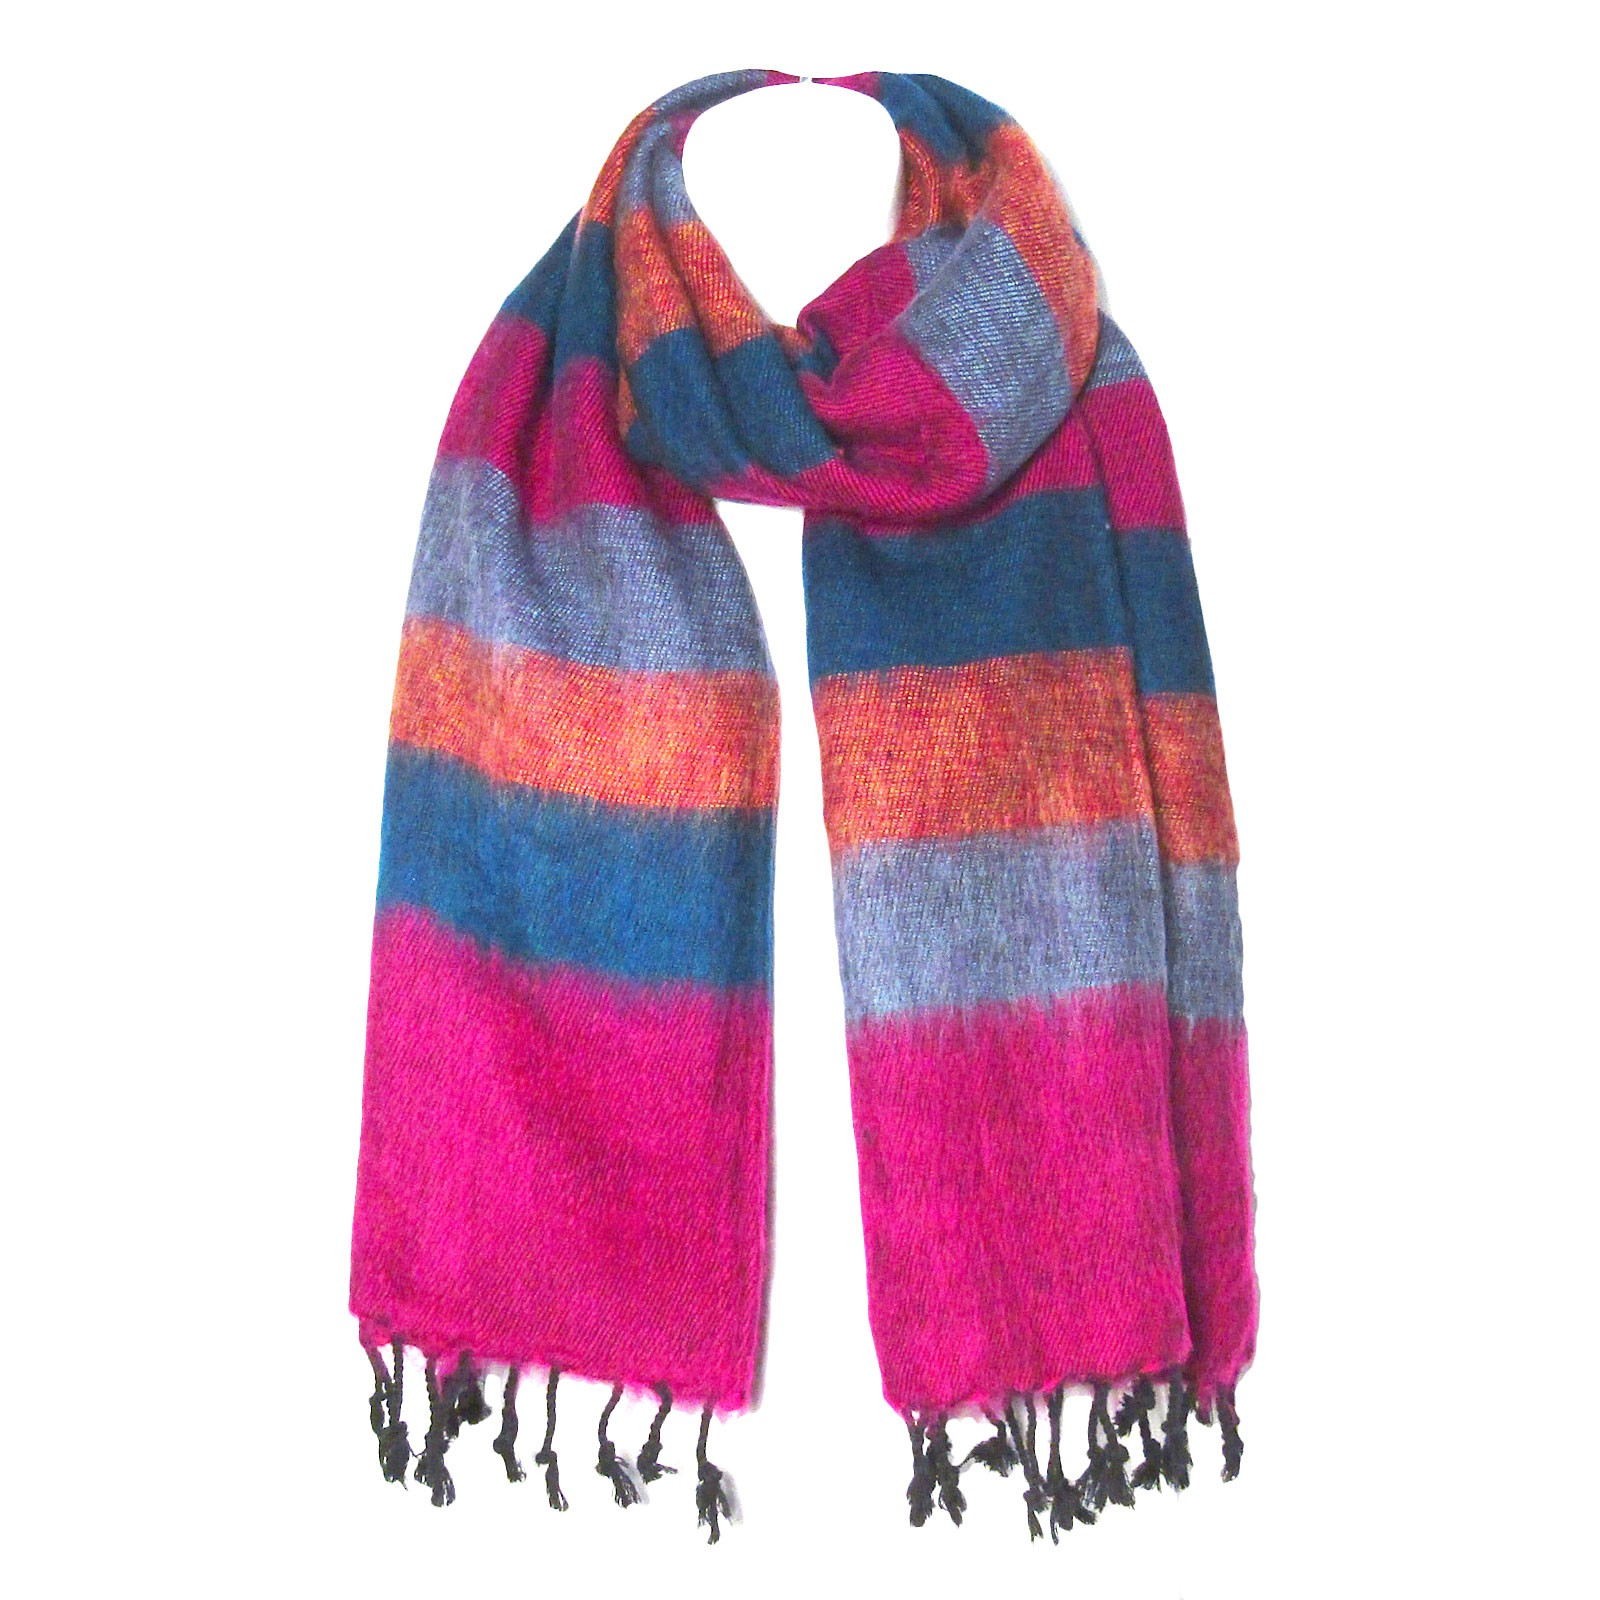 Multi Magenta Blue Color Band Handloom Nepal Wool Scarf Shawl